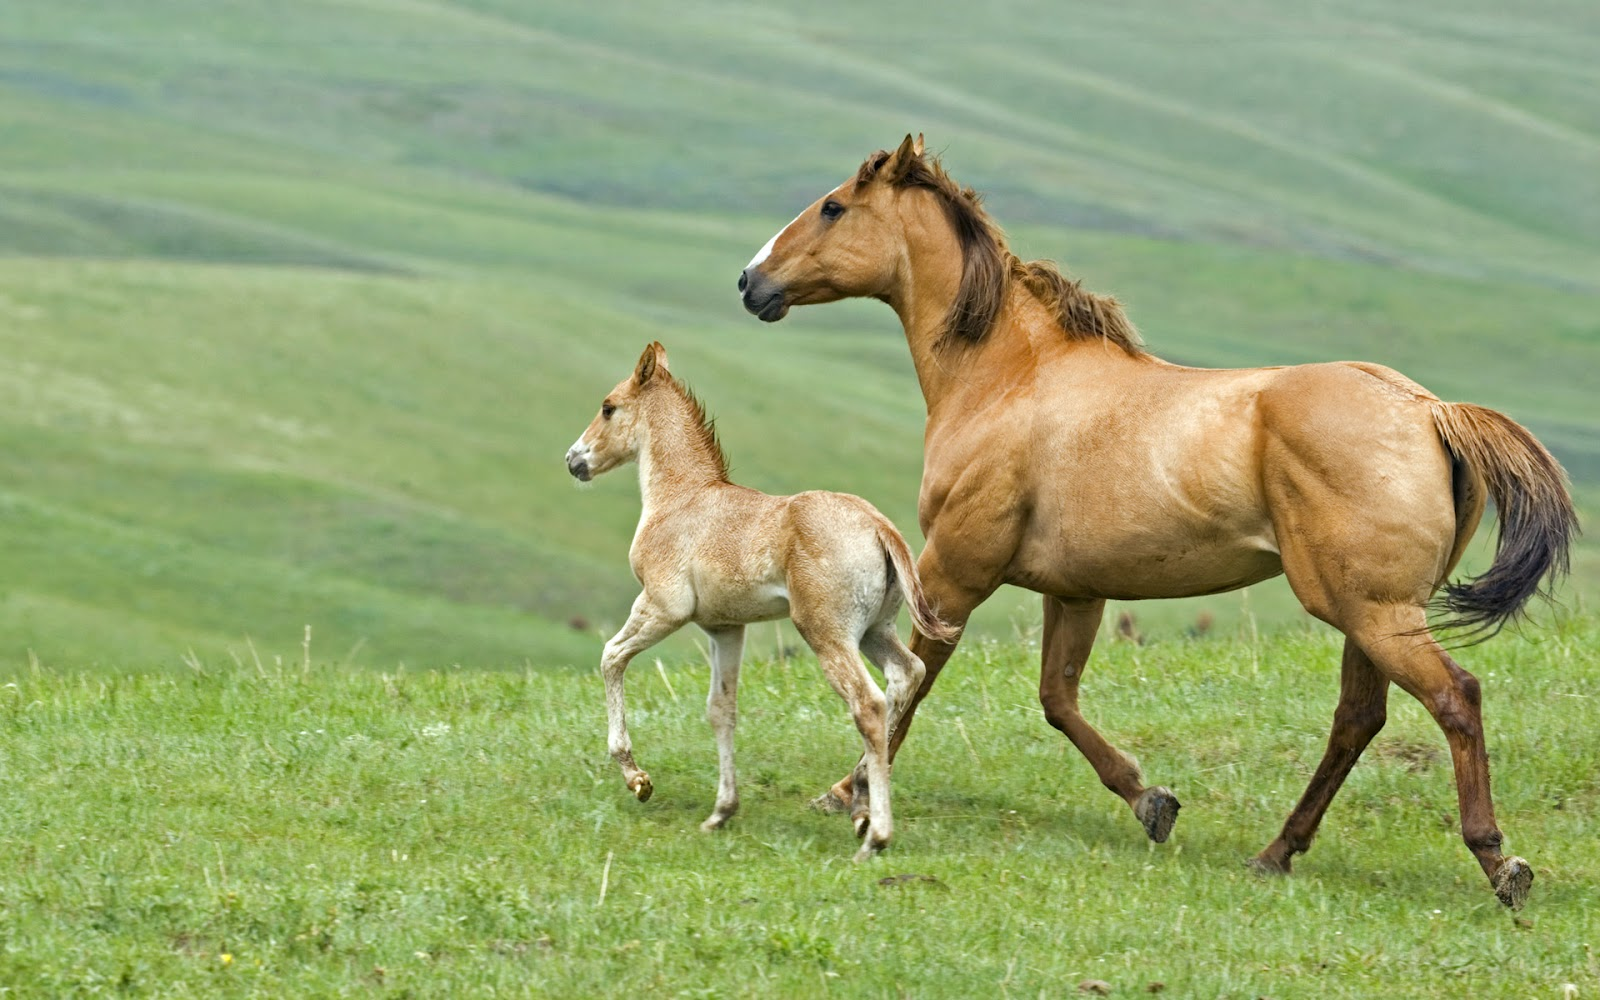 Popular   Wallpaper Horse Family - horse+running+with+baby  Pictures_12956.jpg